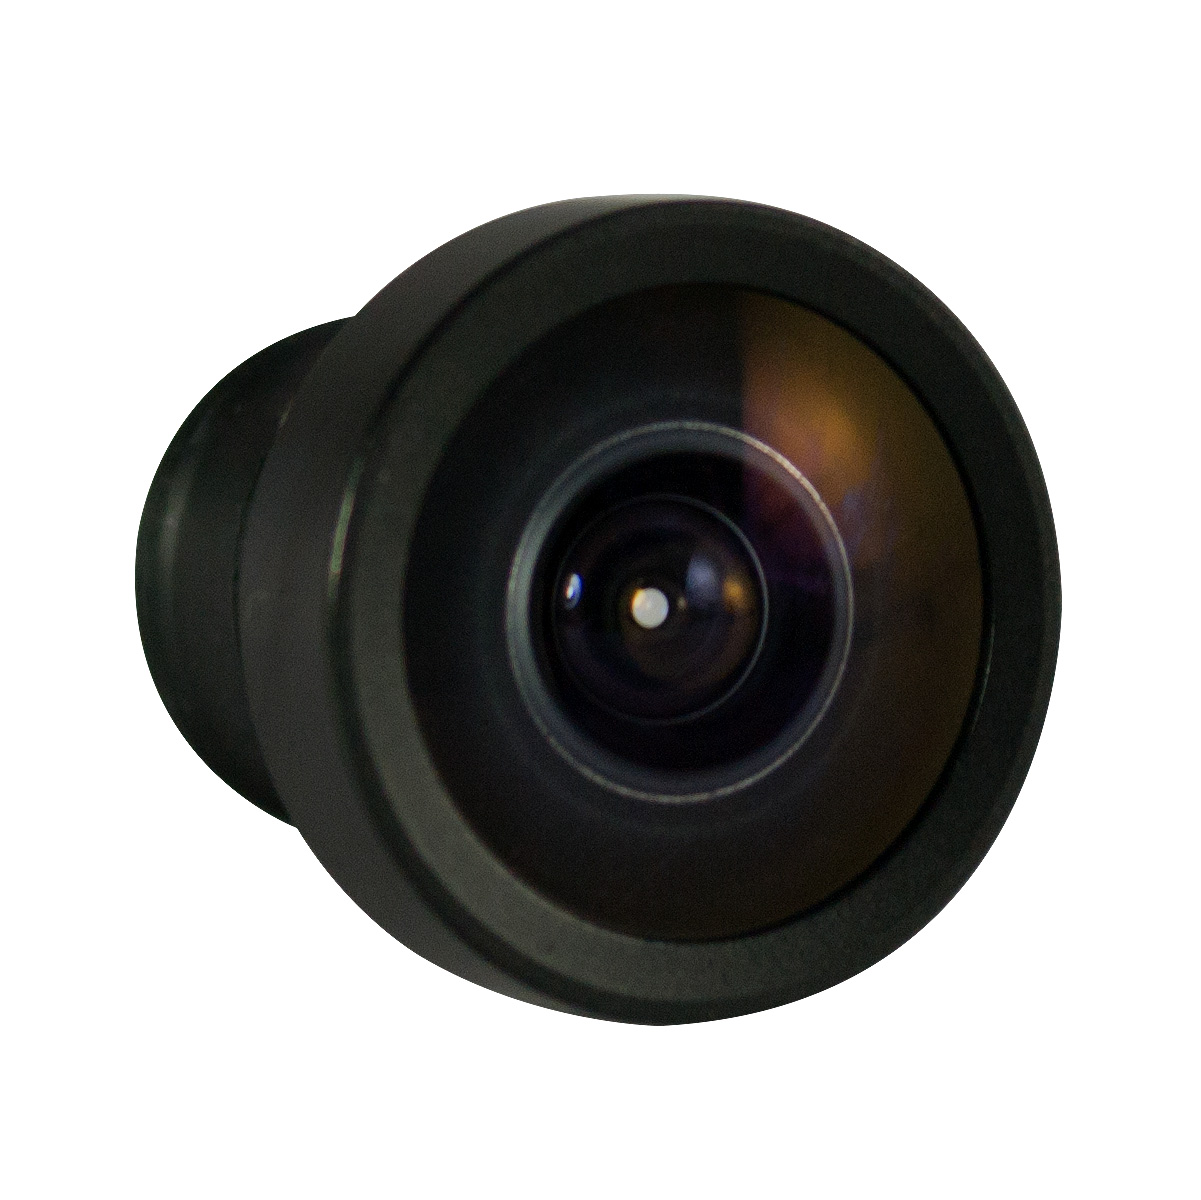 Lens of 2.1mm ideal for infrared cameras